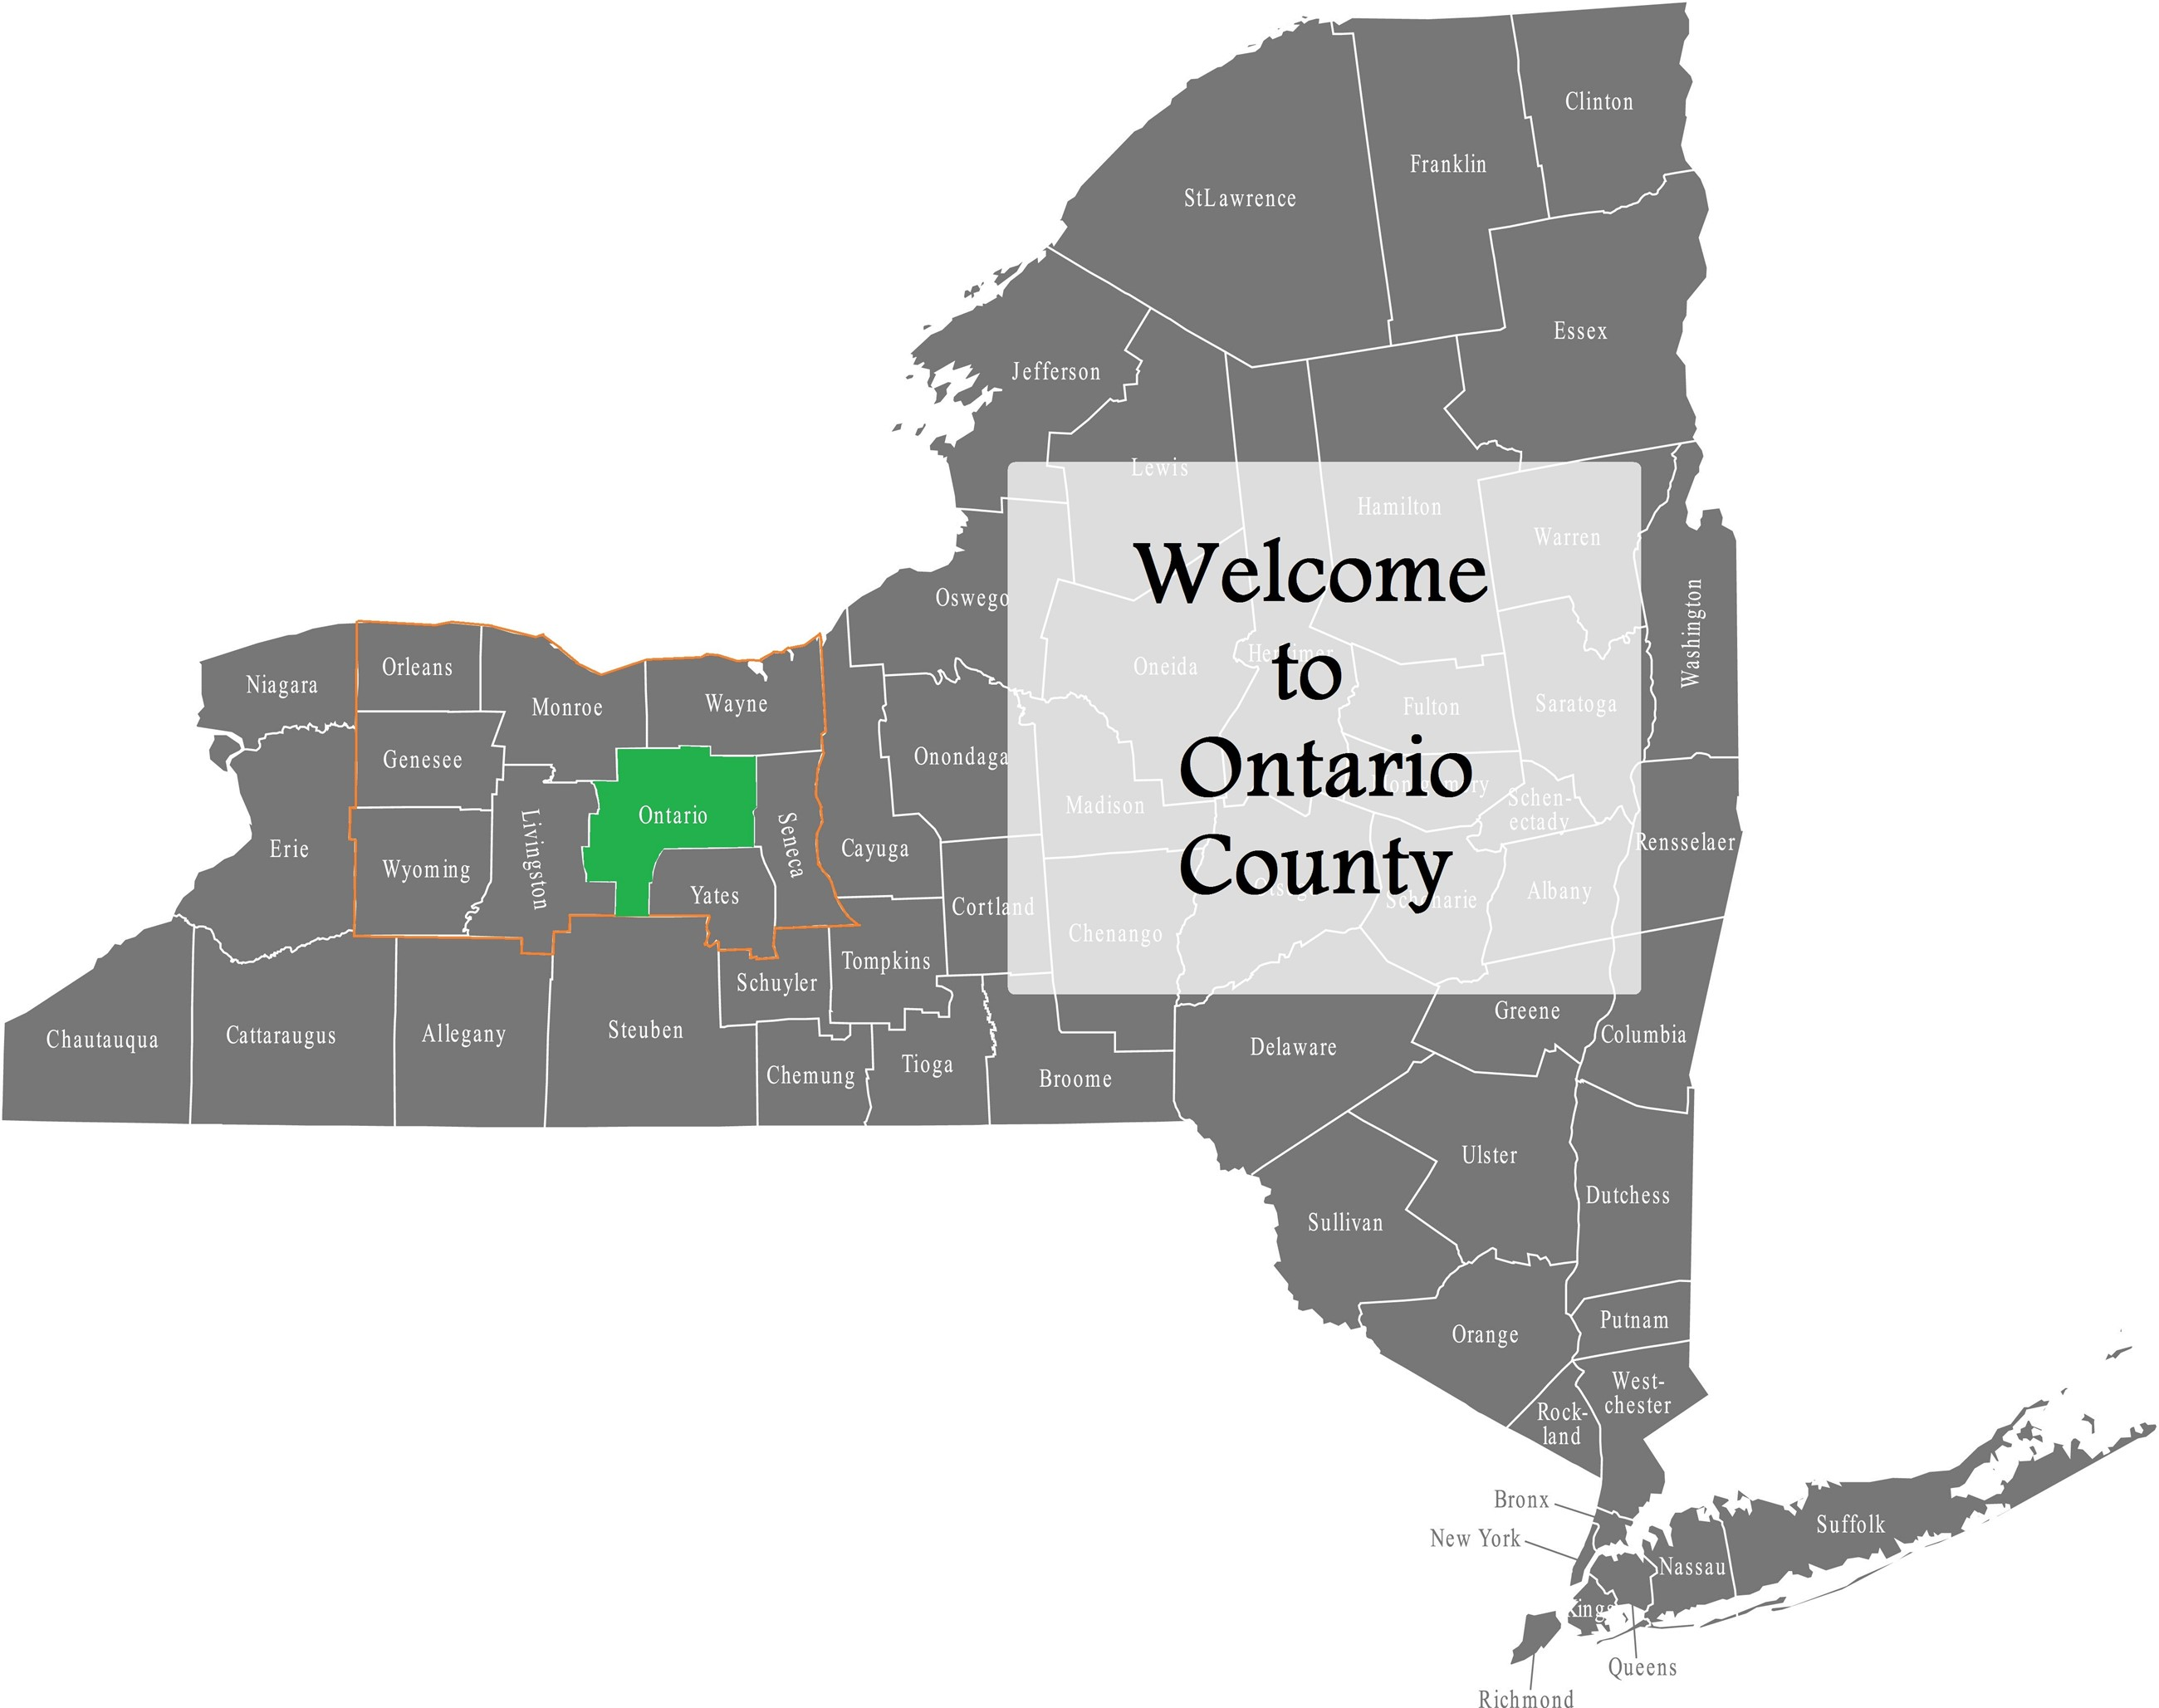 Welcome to Ontario County.jpg